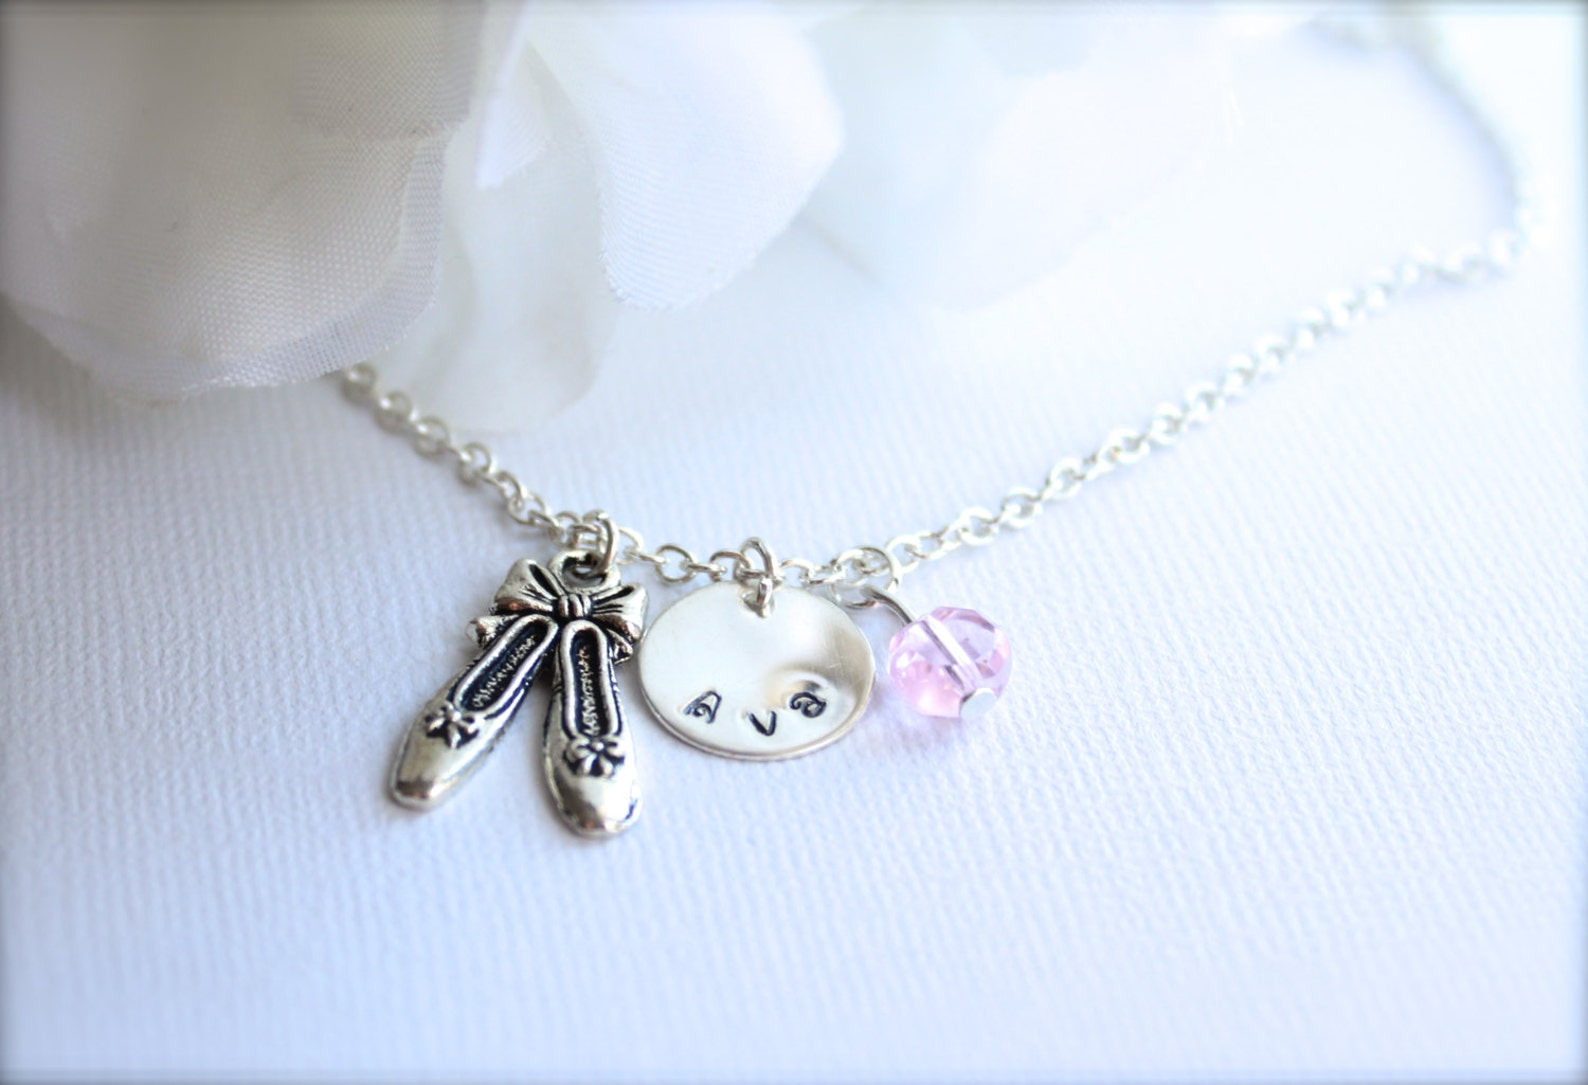 ballet slippers charm necklace for girls sterling silver personalized dance necklace, ballet slippers, dance shoes, pink crystal